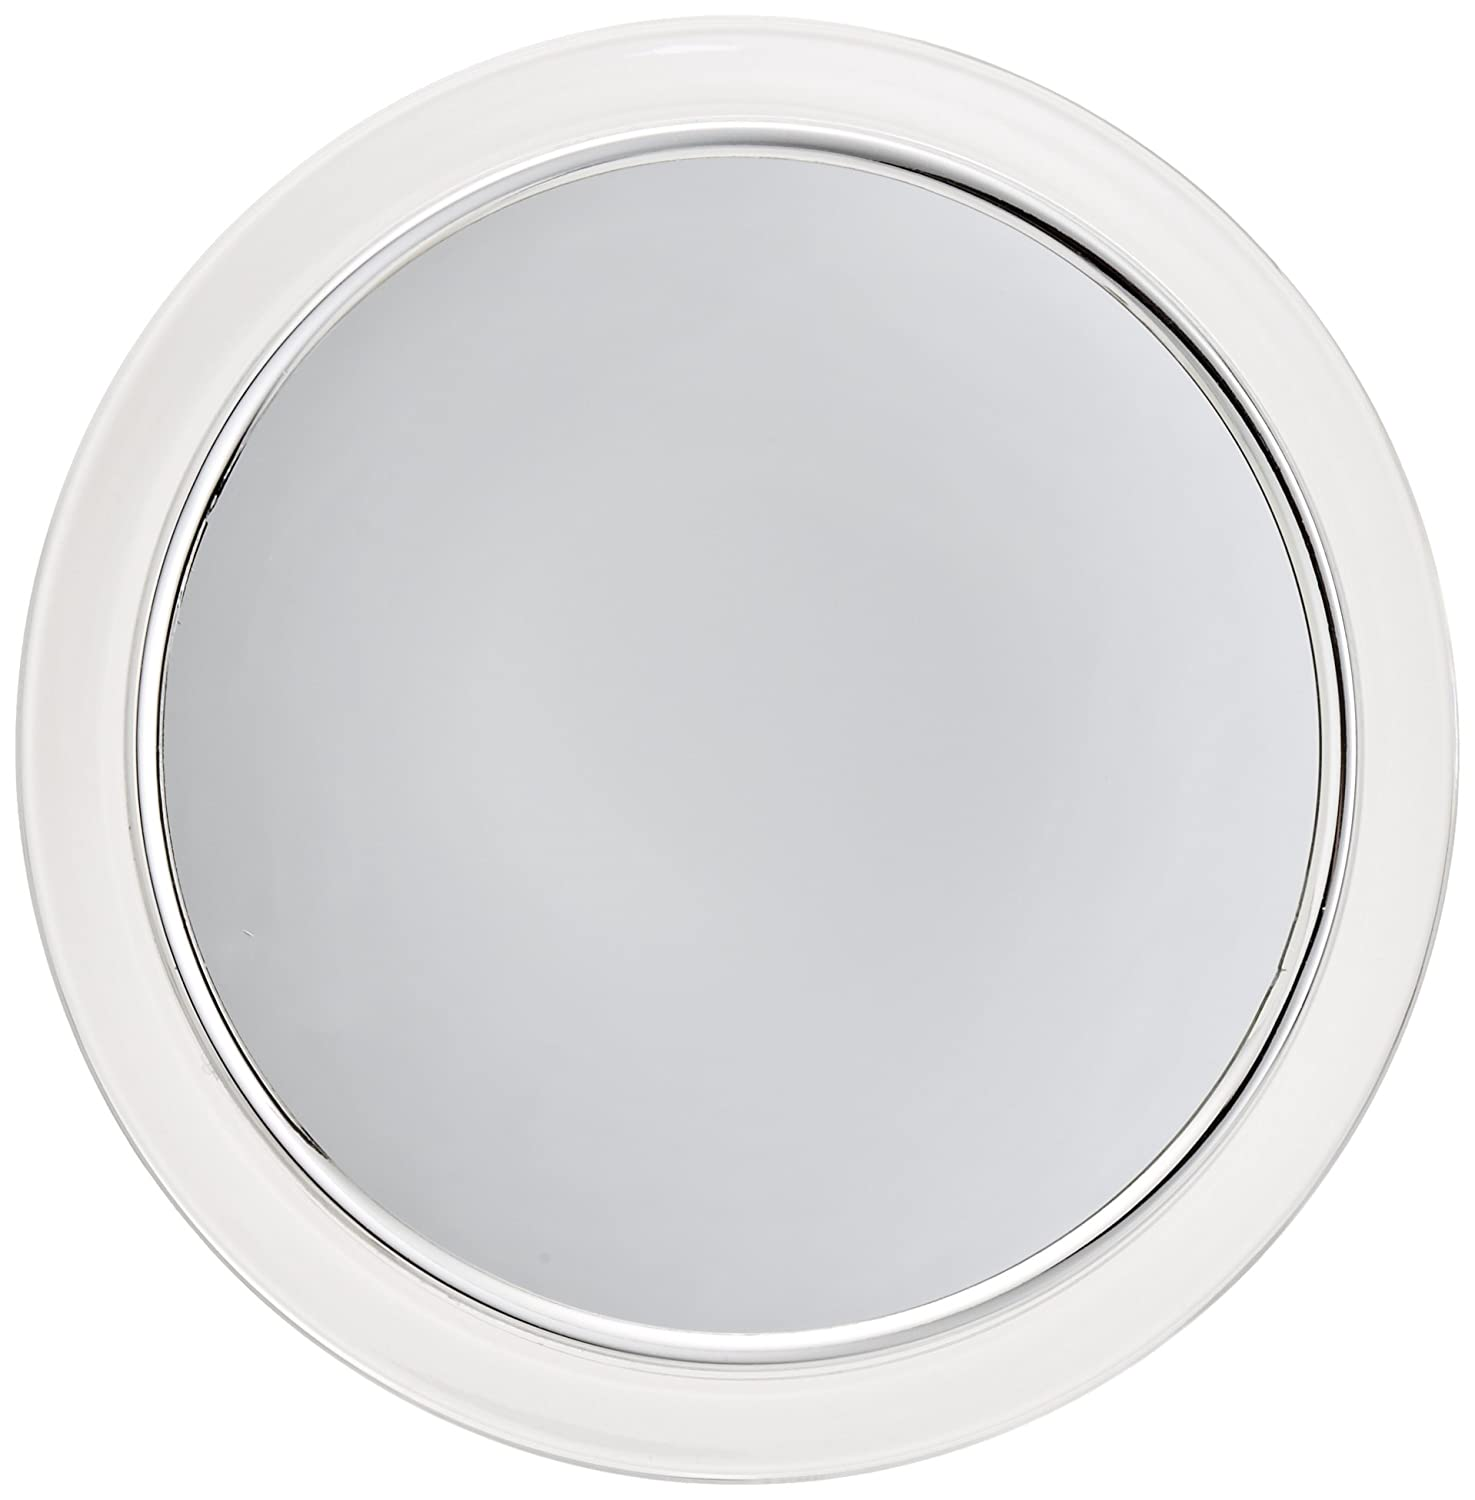 Jerdon JPFM9 9-Inch Portable Fogless Suction Cup Shower Mirror with 3x Magnification, Chrome and Acrylic Finish